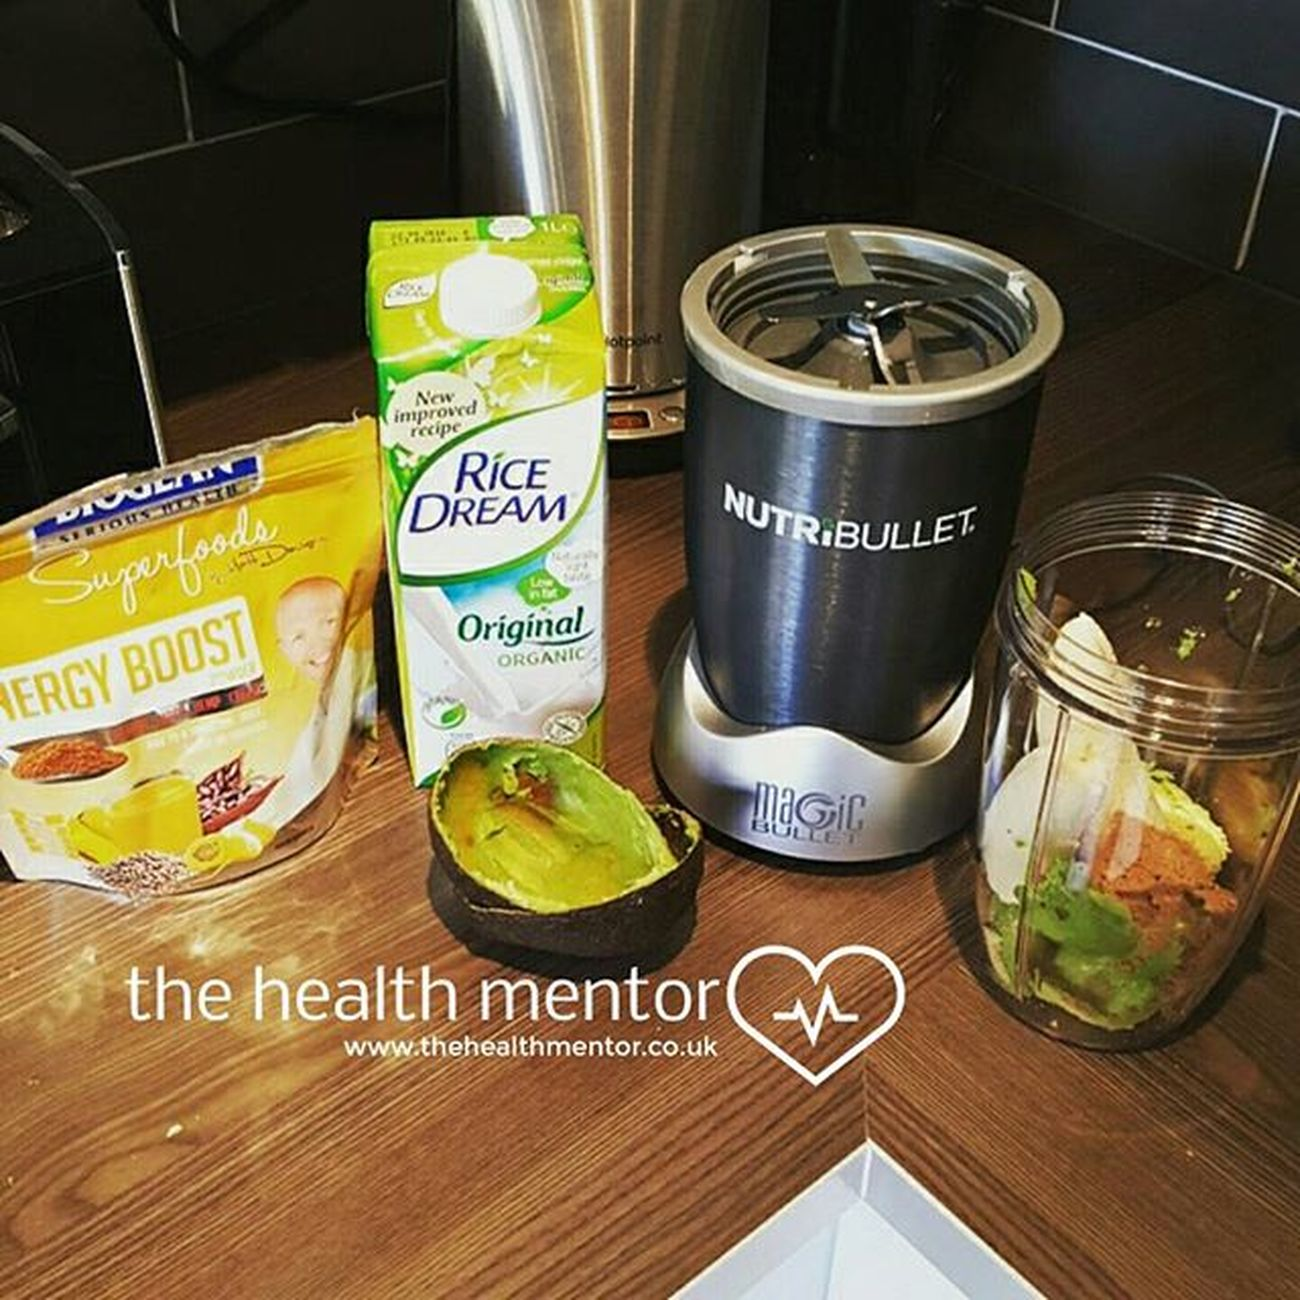 Who LOVE'S Avocado ? One of my favourite Energyboost drinks. Improve your life for the better www.TheHealthMentor.co.uk Banana Groundalmonds Ricedream Nutribullet Nutribulletuk Nutrition Goodmorning Goodfood Lifestylechange Juiceplus Healthychoices Onesimplechange Ificandoityoucandoit Yum Yummy